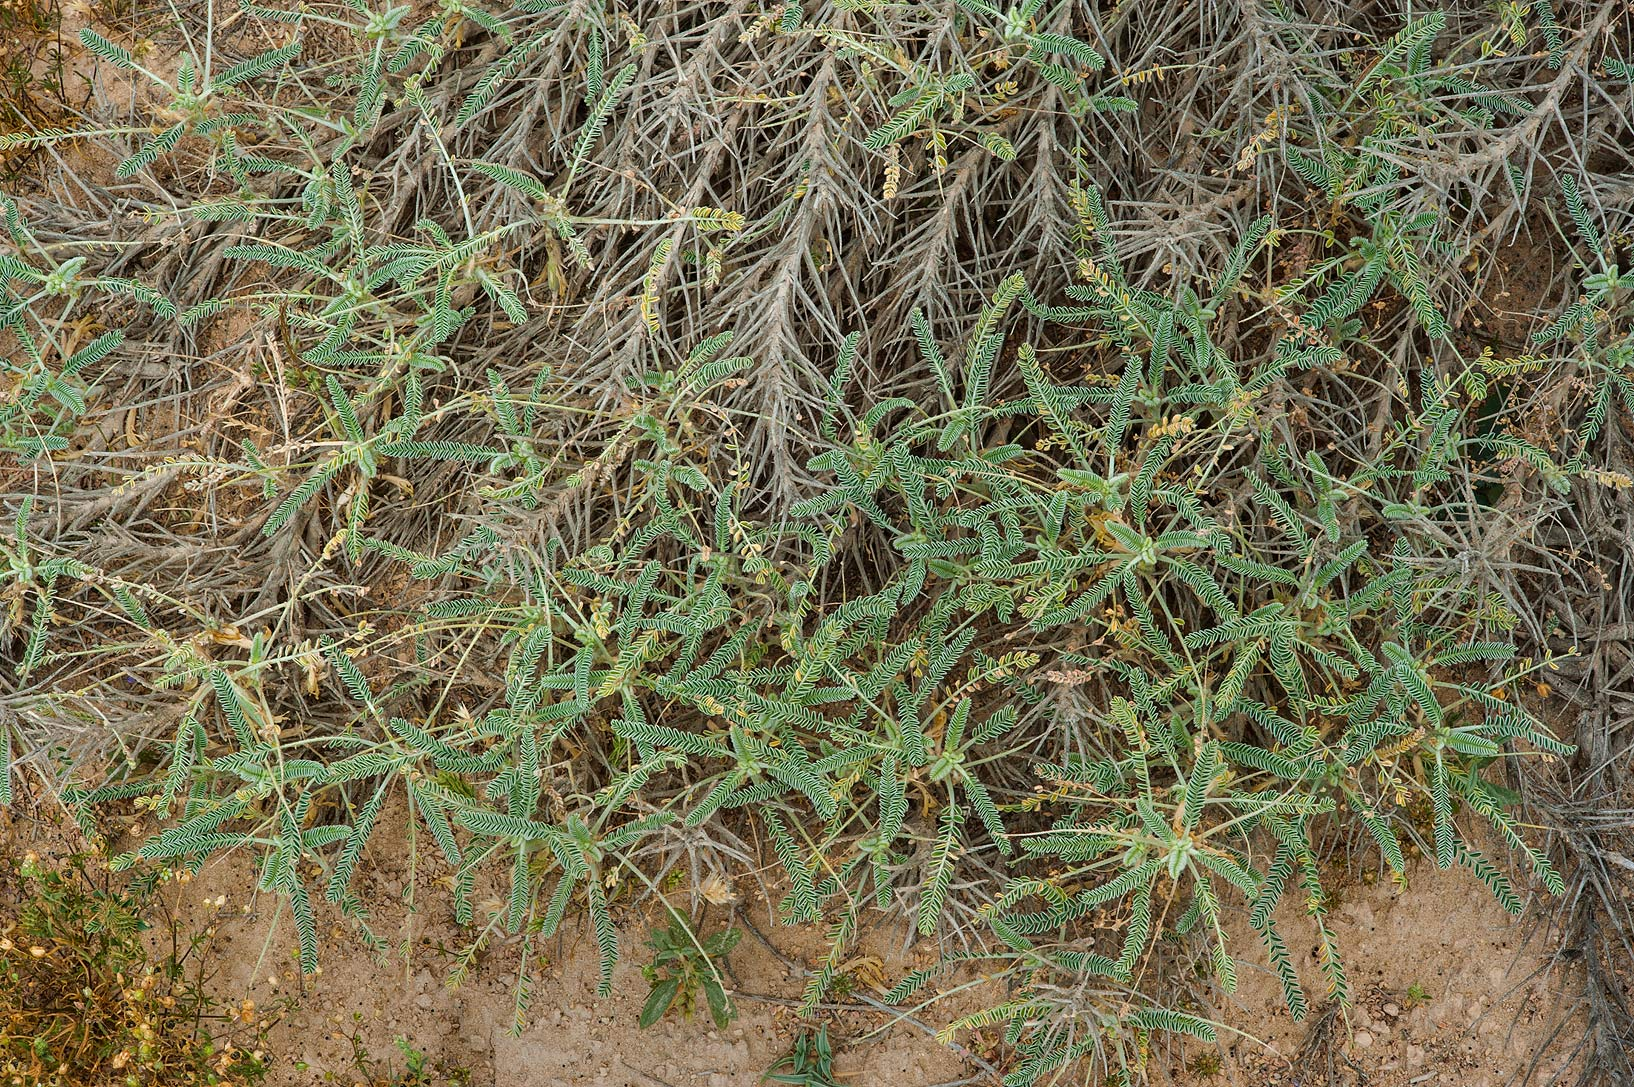 Half dry plant of Astragalus sieberi on periphery...Irkaya) Farms. South-western Qatar